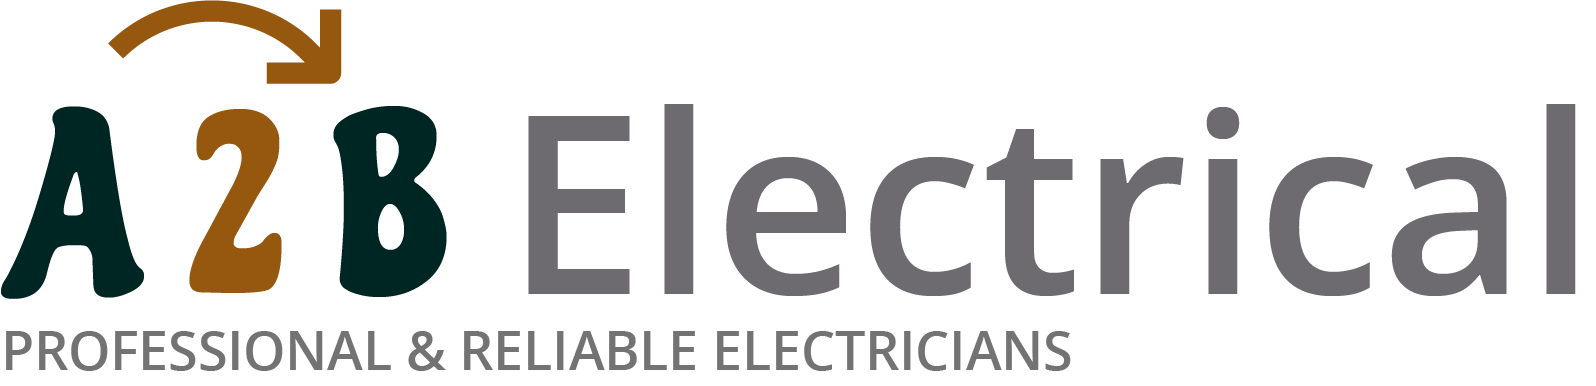 If you have electrical wiring problems in Hadleigh, we can provide an electrician to have a look for you.